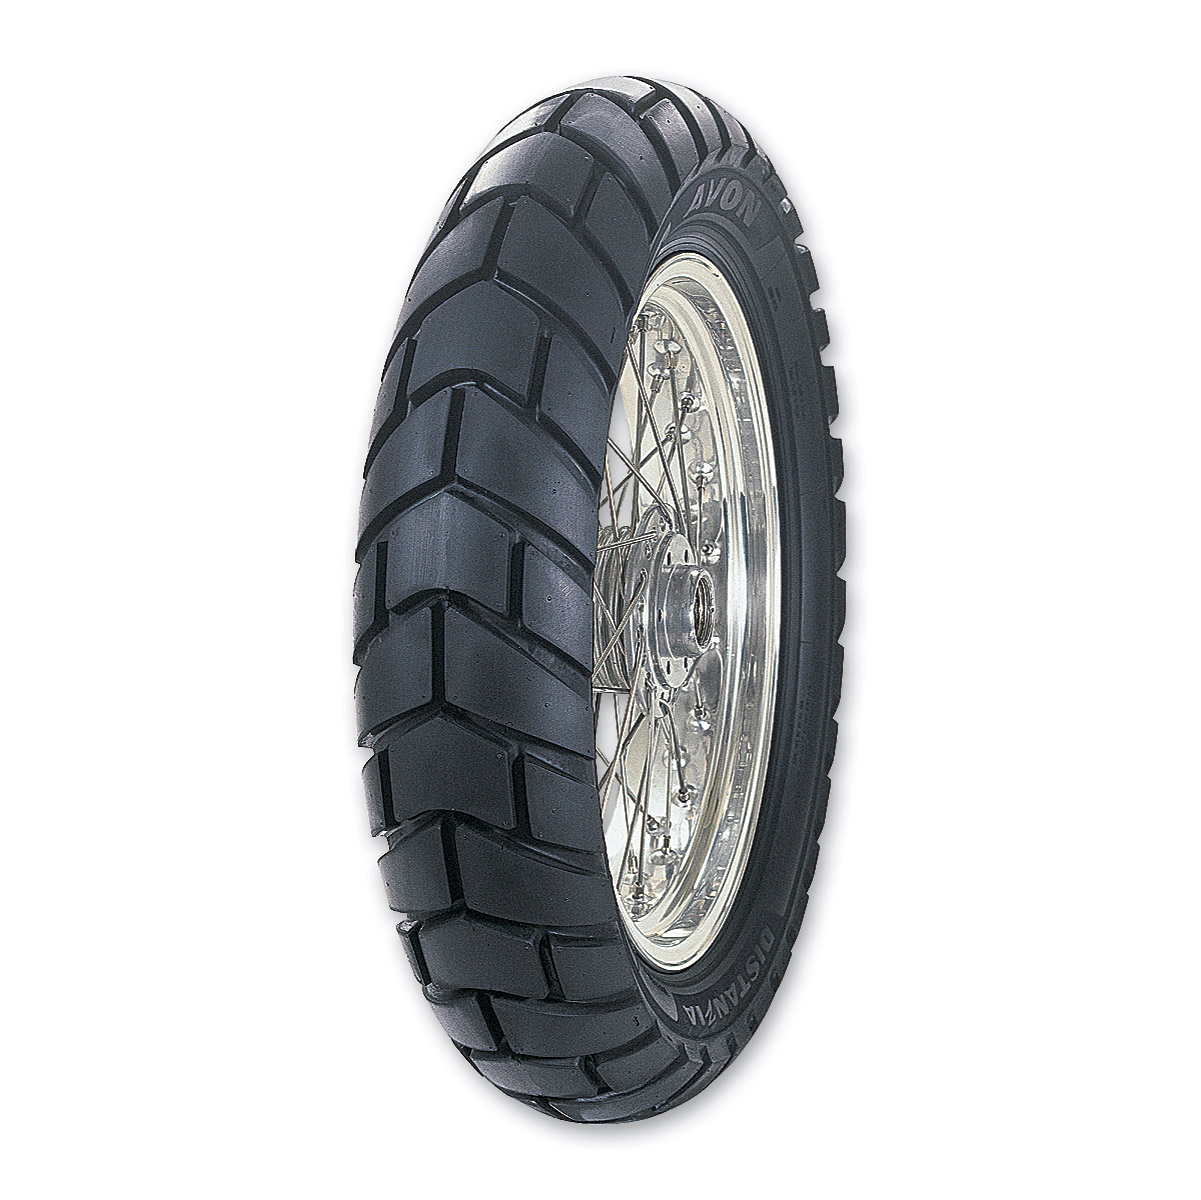 Avon Distanzia AM44 130/80R-17 Rear Tire